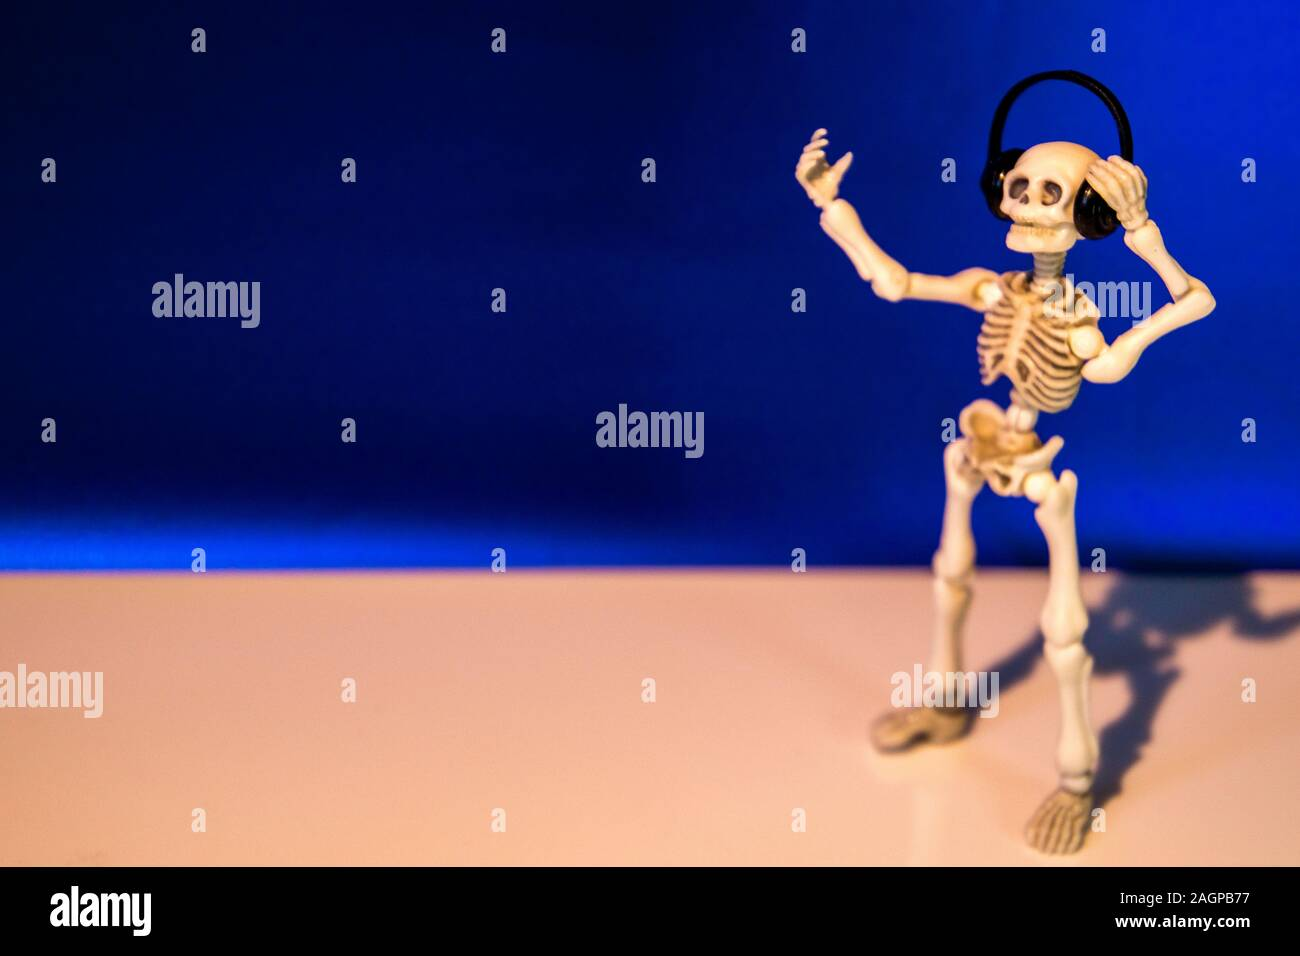 A skeleton enjoys listening to his / her music on their headphones. Taken on a blue background. Stock Photo